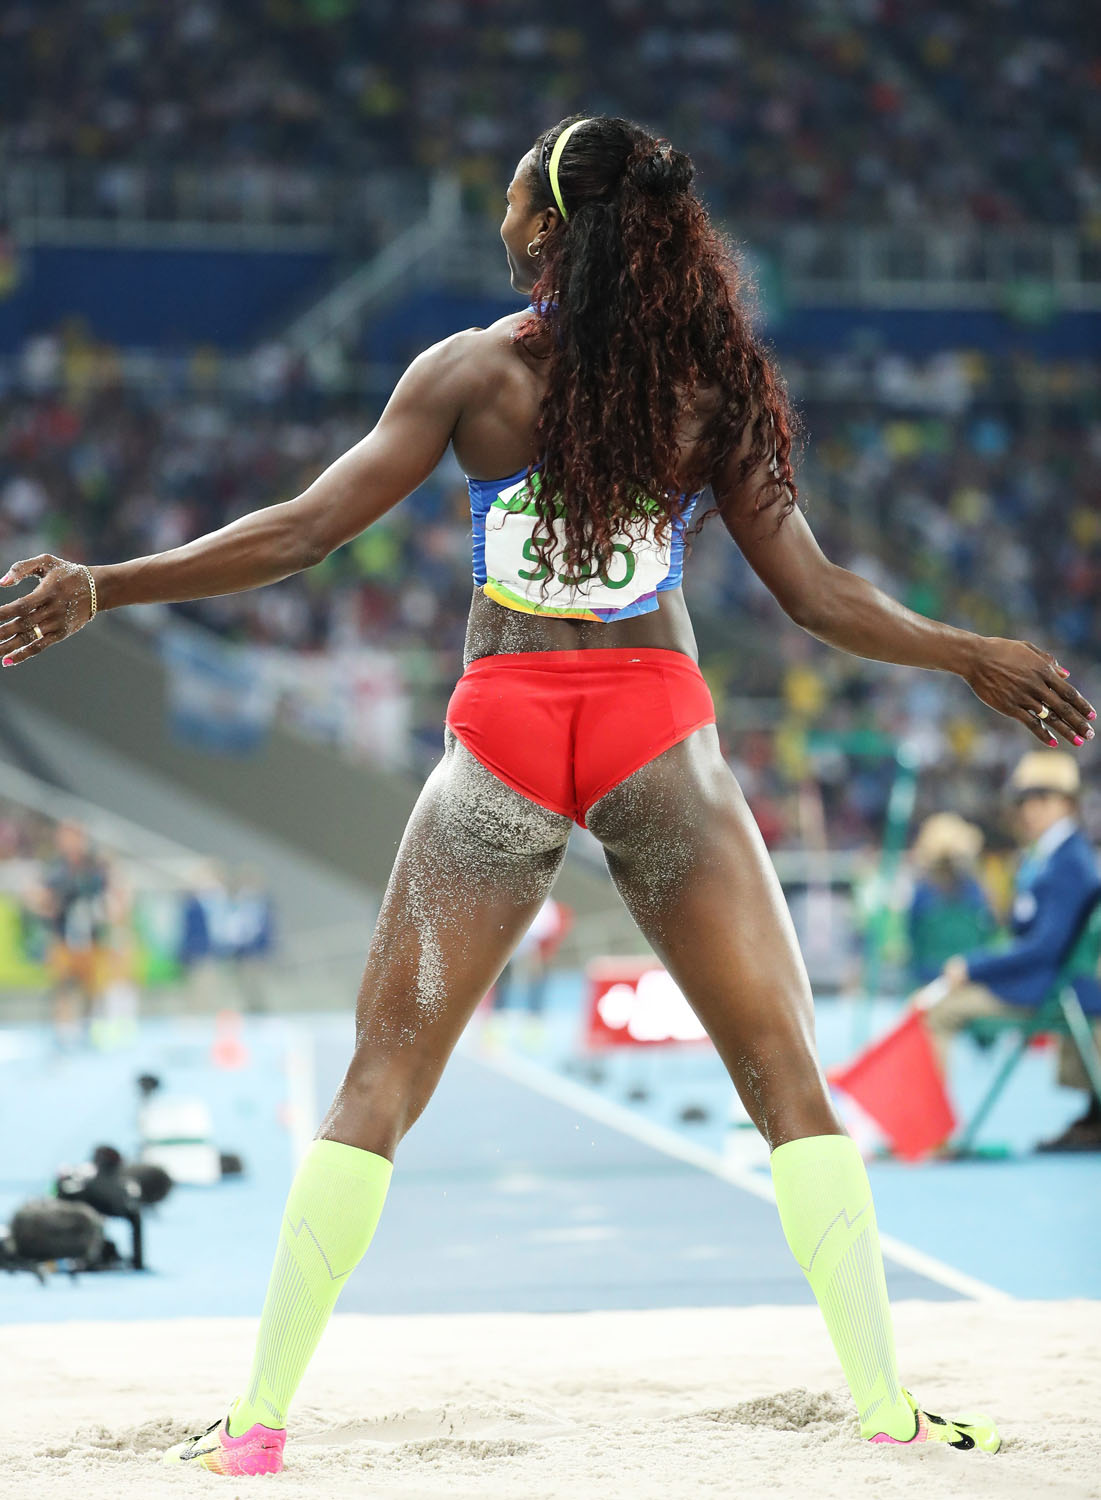 . Rio De Janeiro (Brazil), 15/08/2016.- Caterine Ibarguen of Colombia reacts after an attempt in the women's Triple Jump final of the Rio 2016 Olympic Games Athletics, Track and Field events at the Olympic Stadium in Rio de Janeiro, Brazil, 14 August 2016. Ibarguen won gold. (Atletismo, Brasil) EFE/EPA/DIEGO AZUBEL